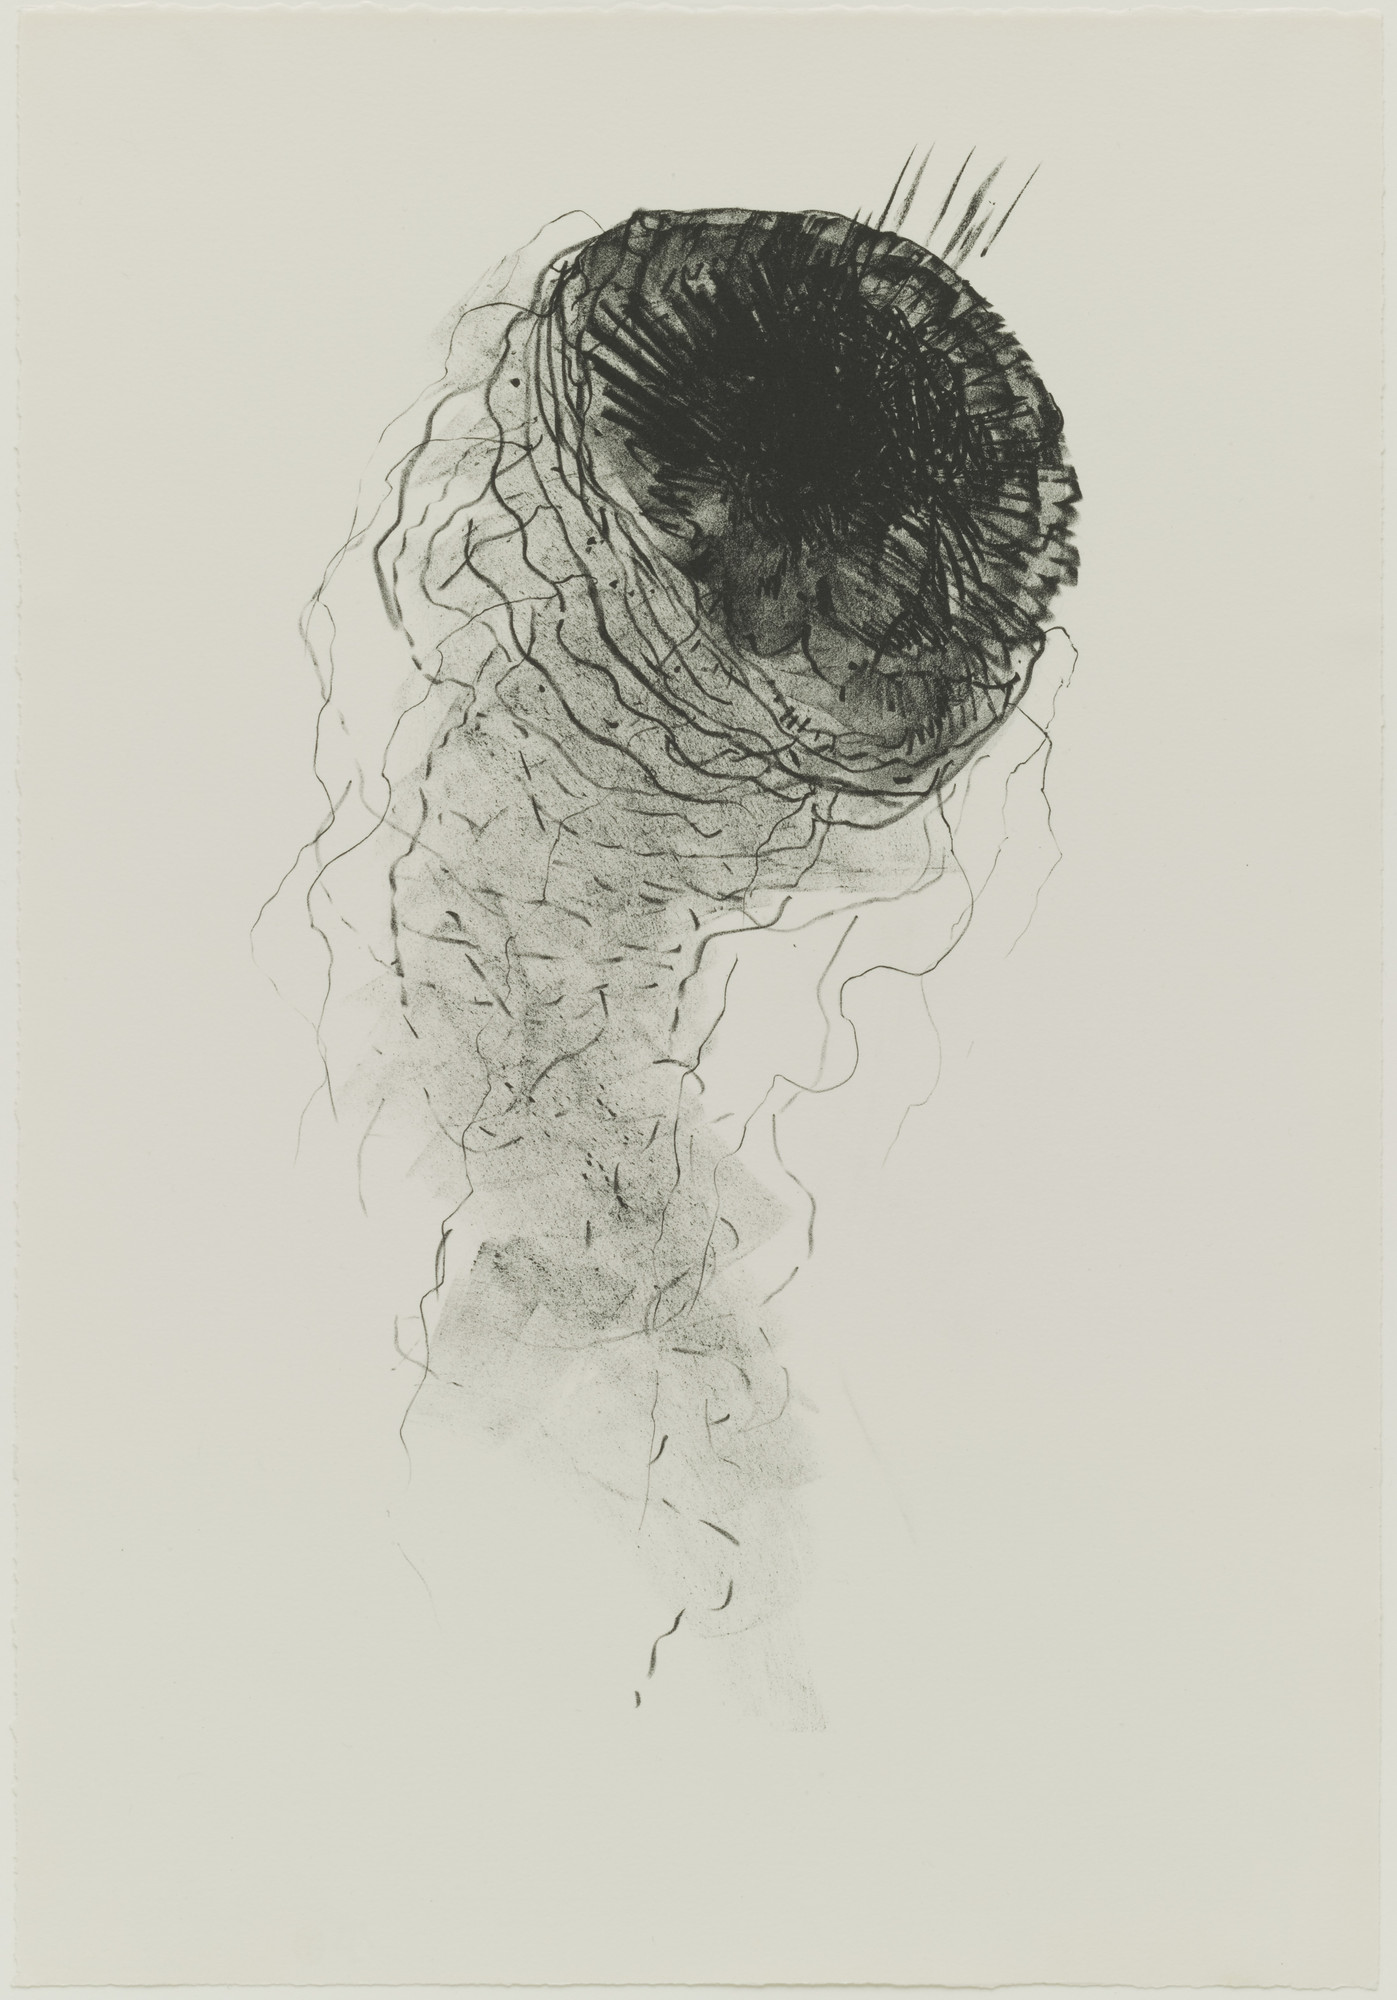 Bruce Conner. Jelly Fish. April 12-28, 1965 | MoMA